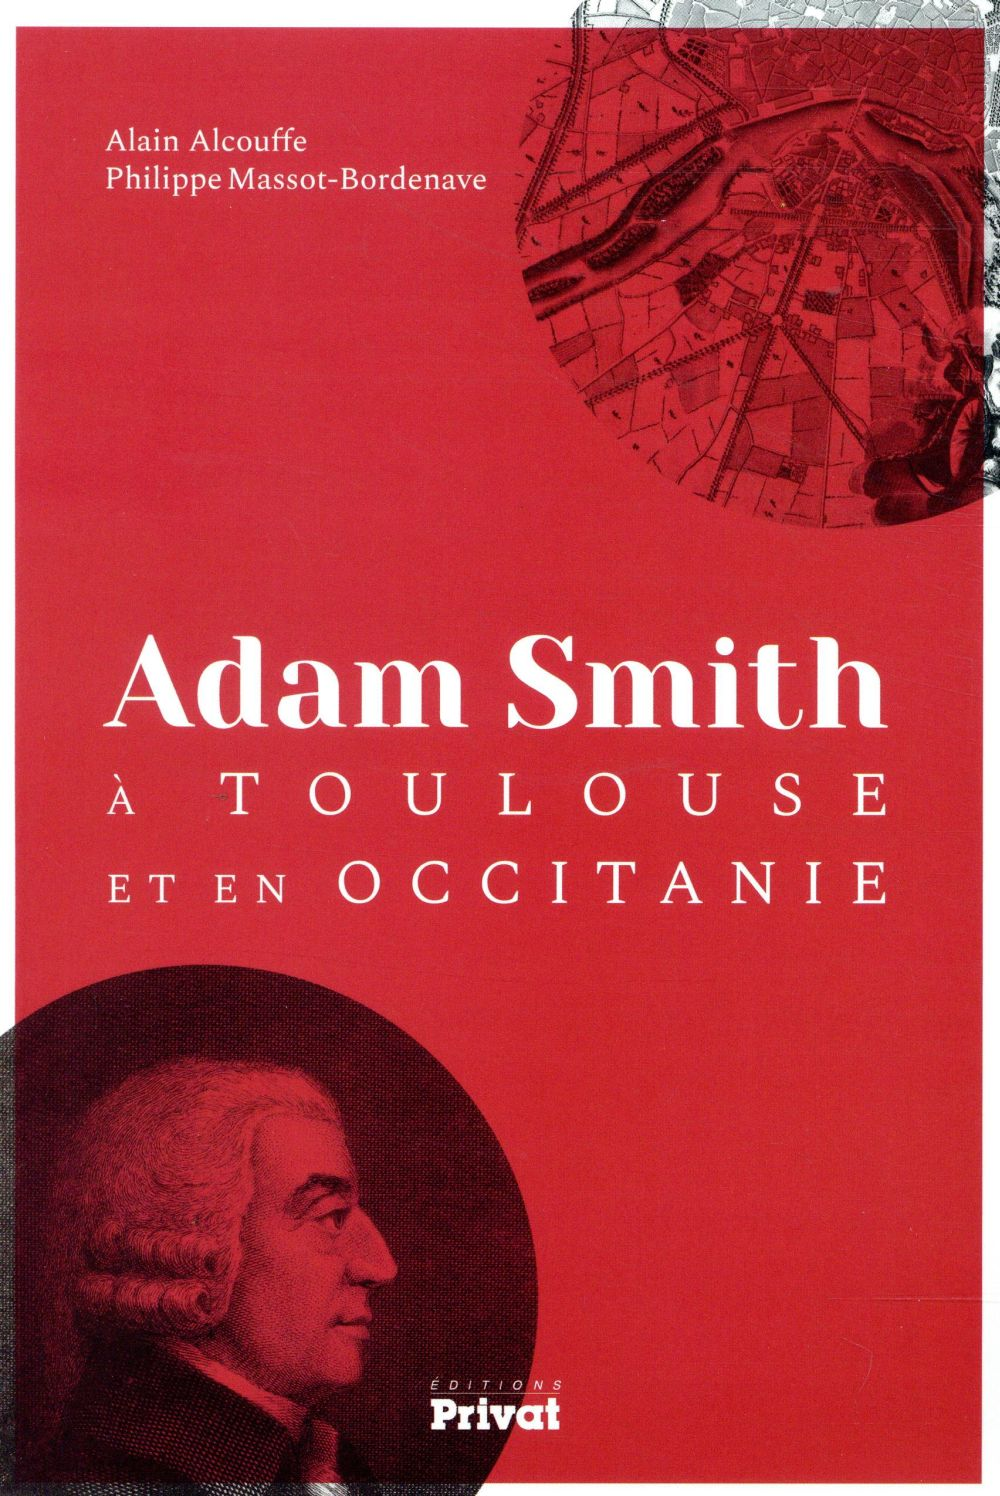 Adam smith en occitanie